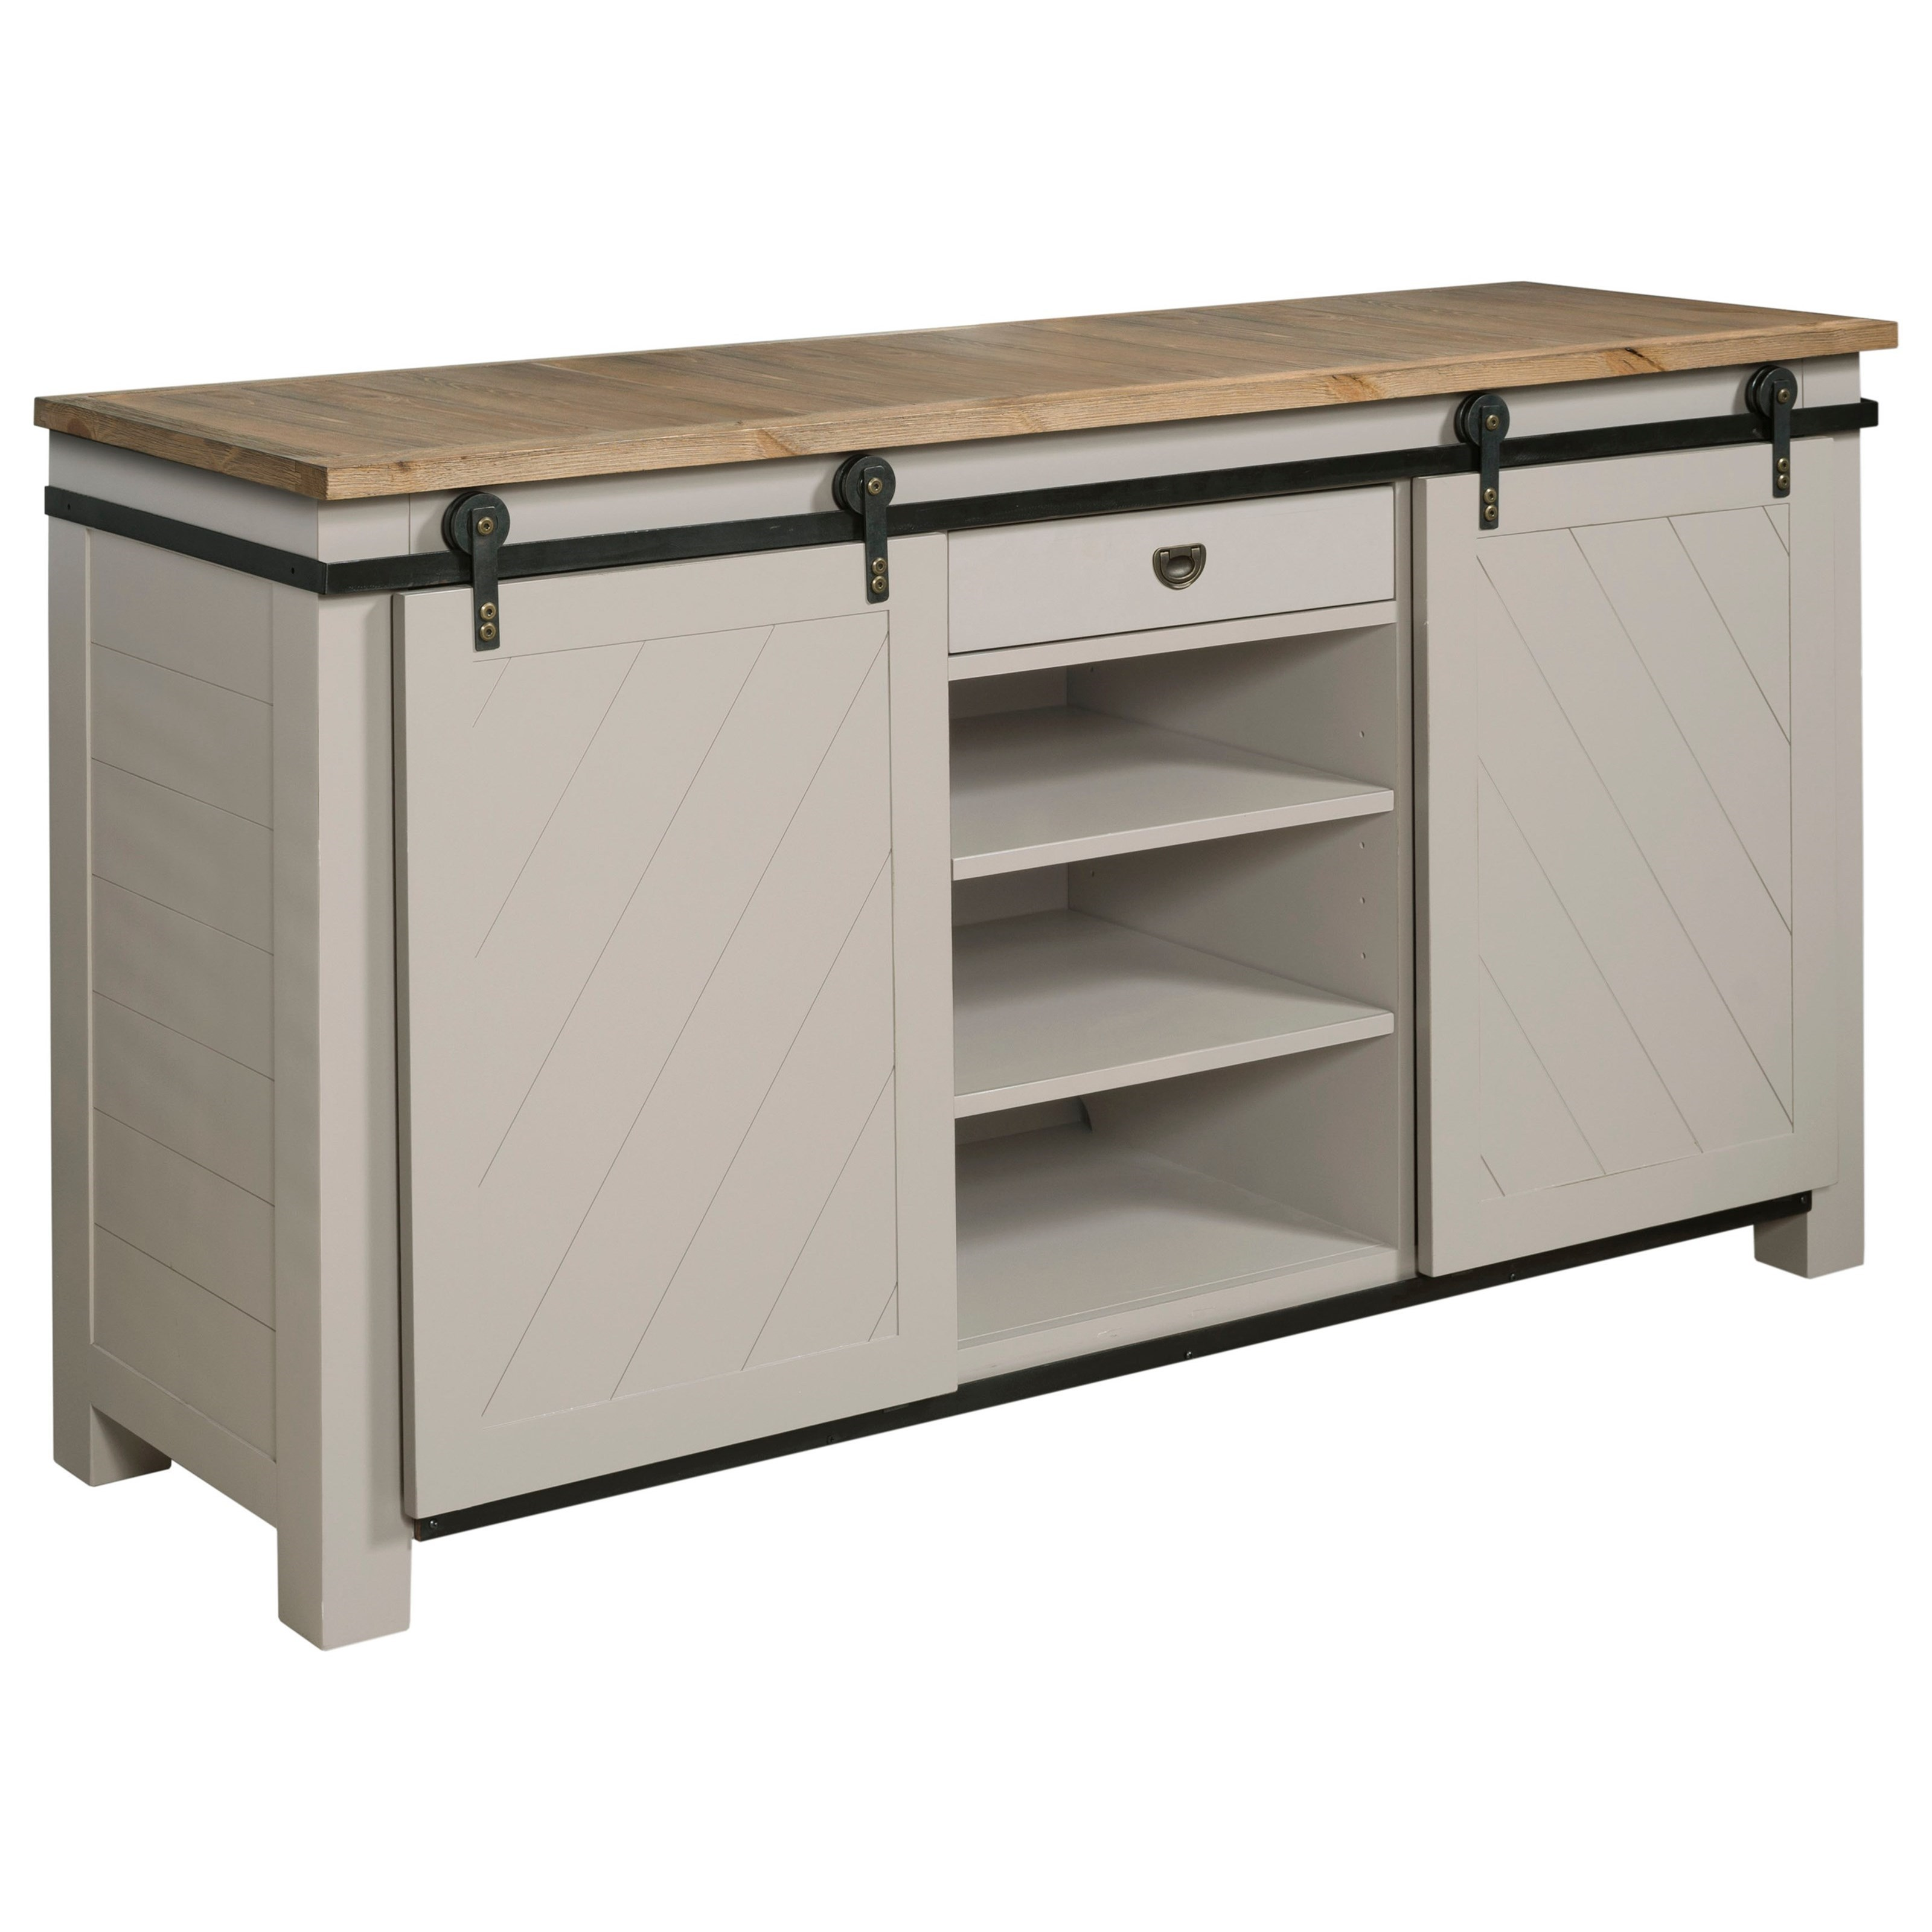 Hammary Junction Shiplap Sliding Door Media Console With Adjustable Shelves